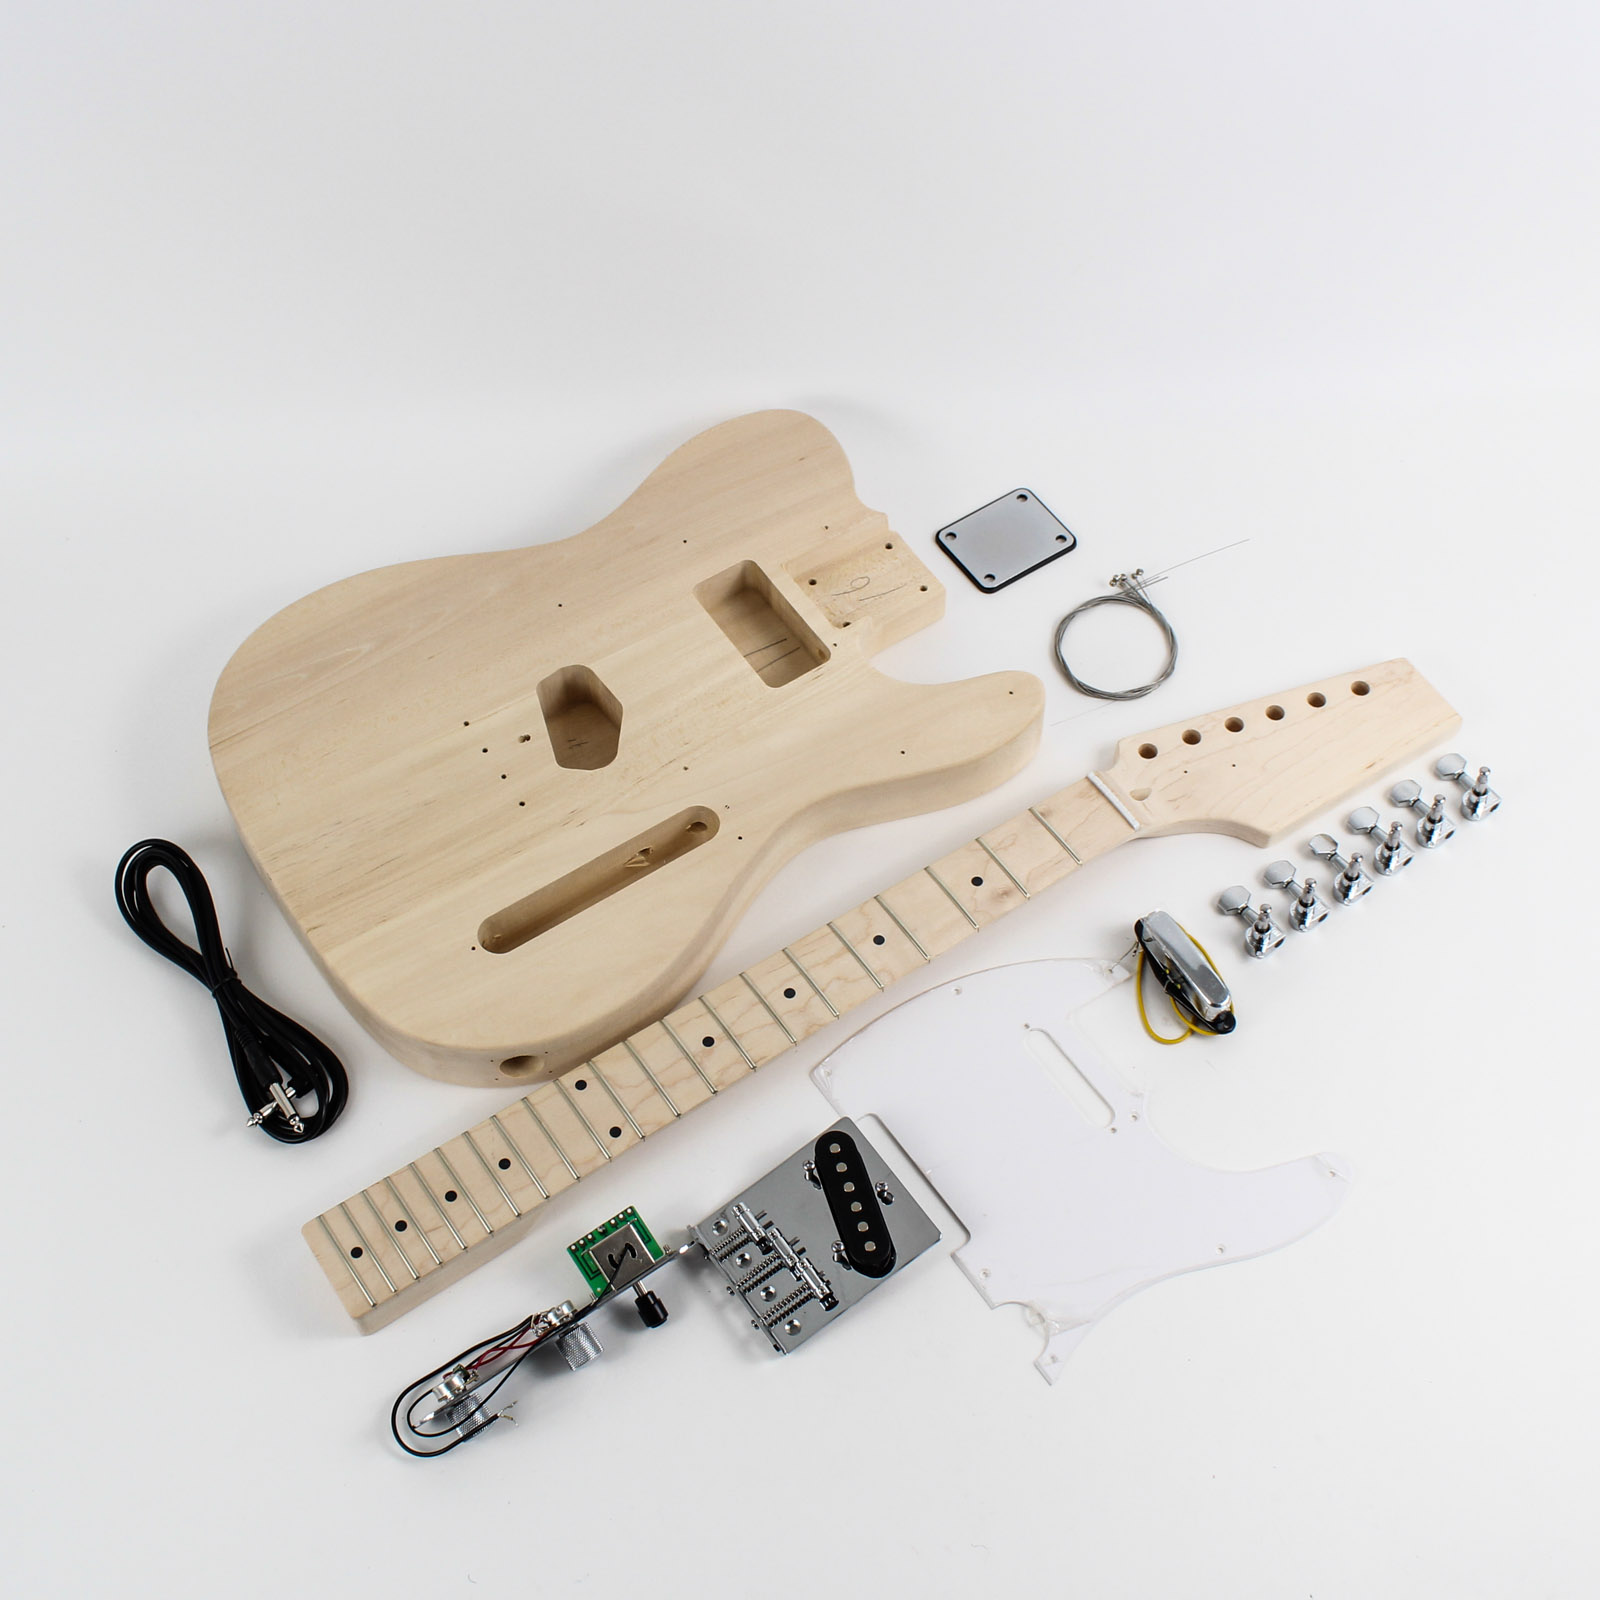 Diy guitar kits build your own electric guitar kit huge range featured product solutioingenieria Image collections